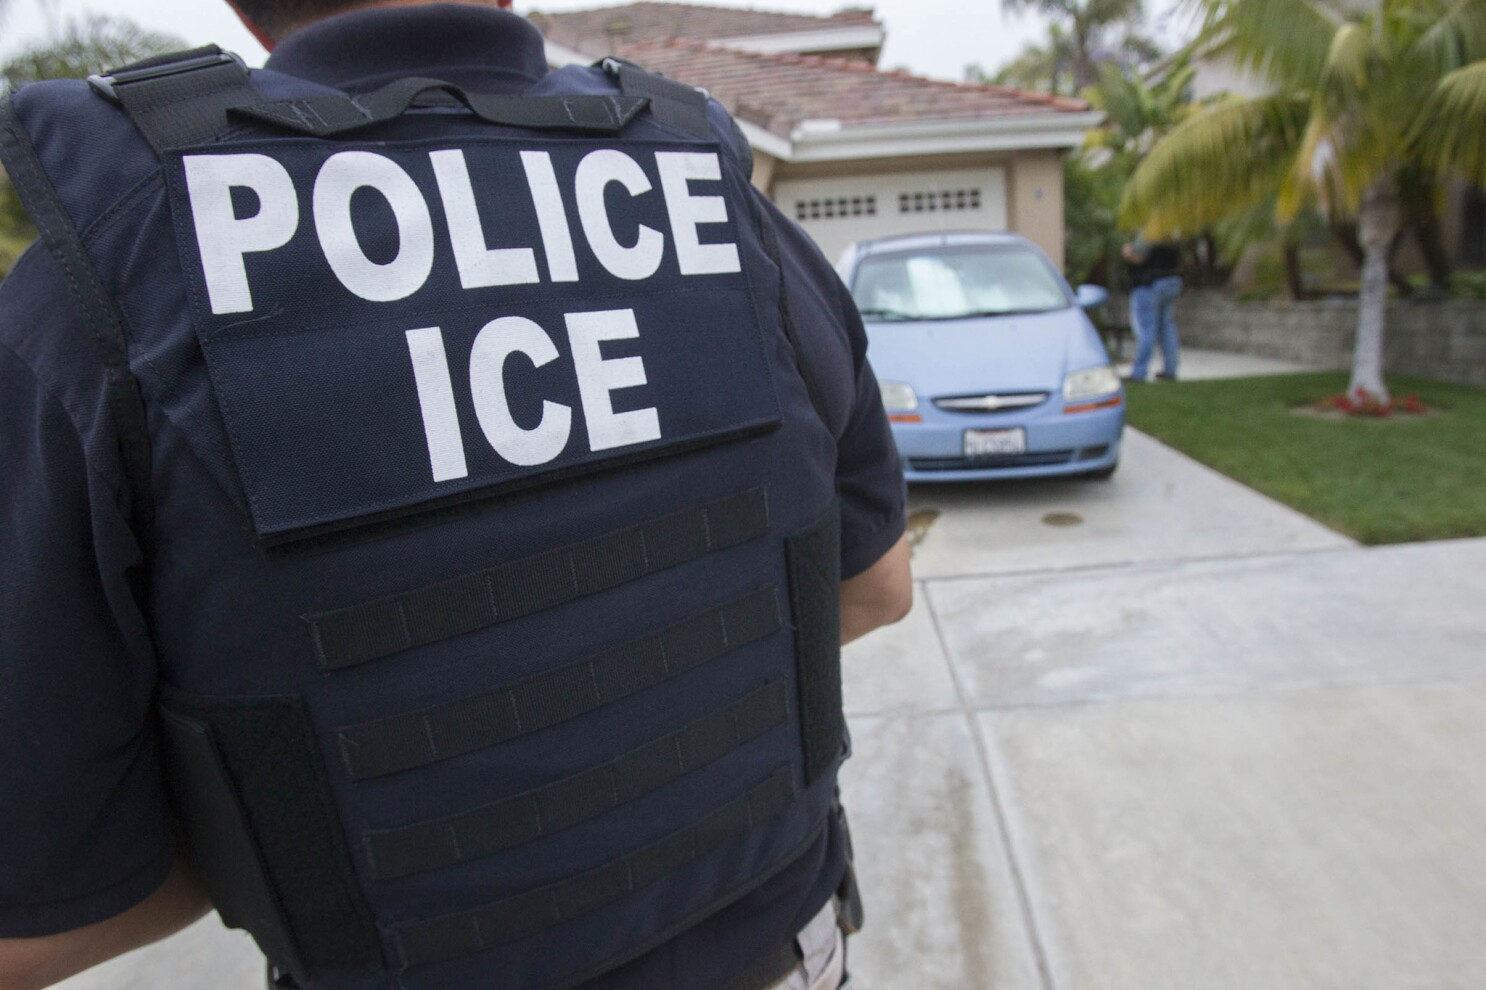 With potential ICE raids looming, local police reiterate they don't